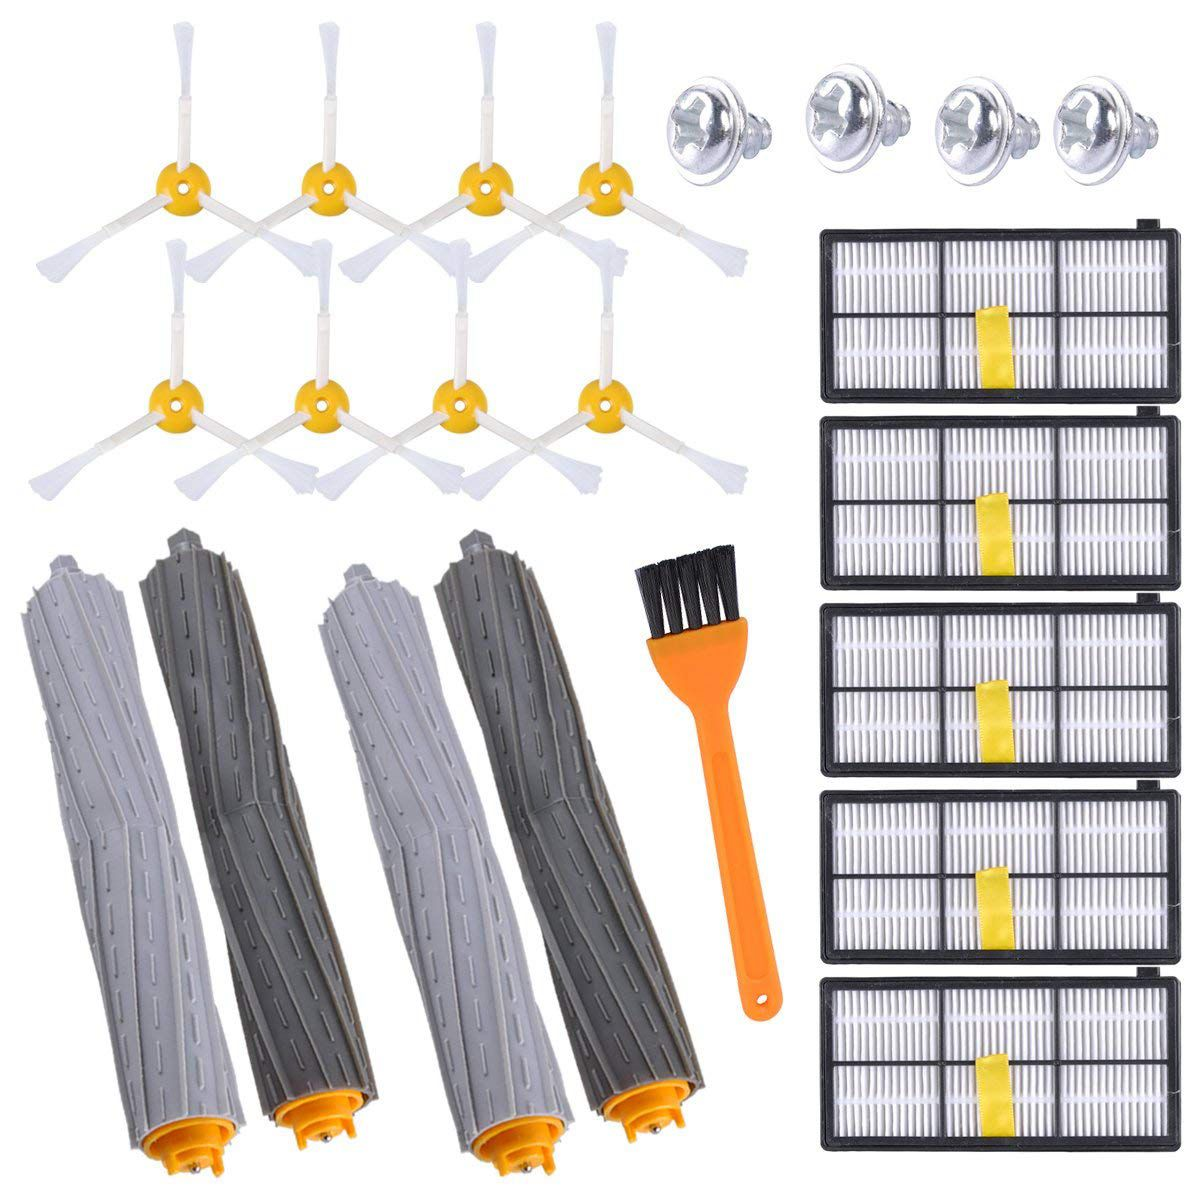 15PCS Replacement Parts for iRobot Roomba 800 & 900 Series 980 960 890 Robotic Vacuum, Replenishment Kit with 5 Hepa Filters,